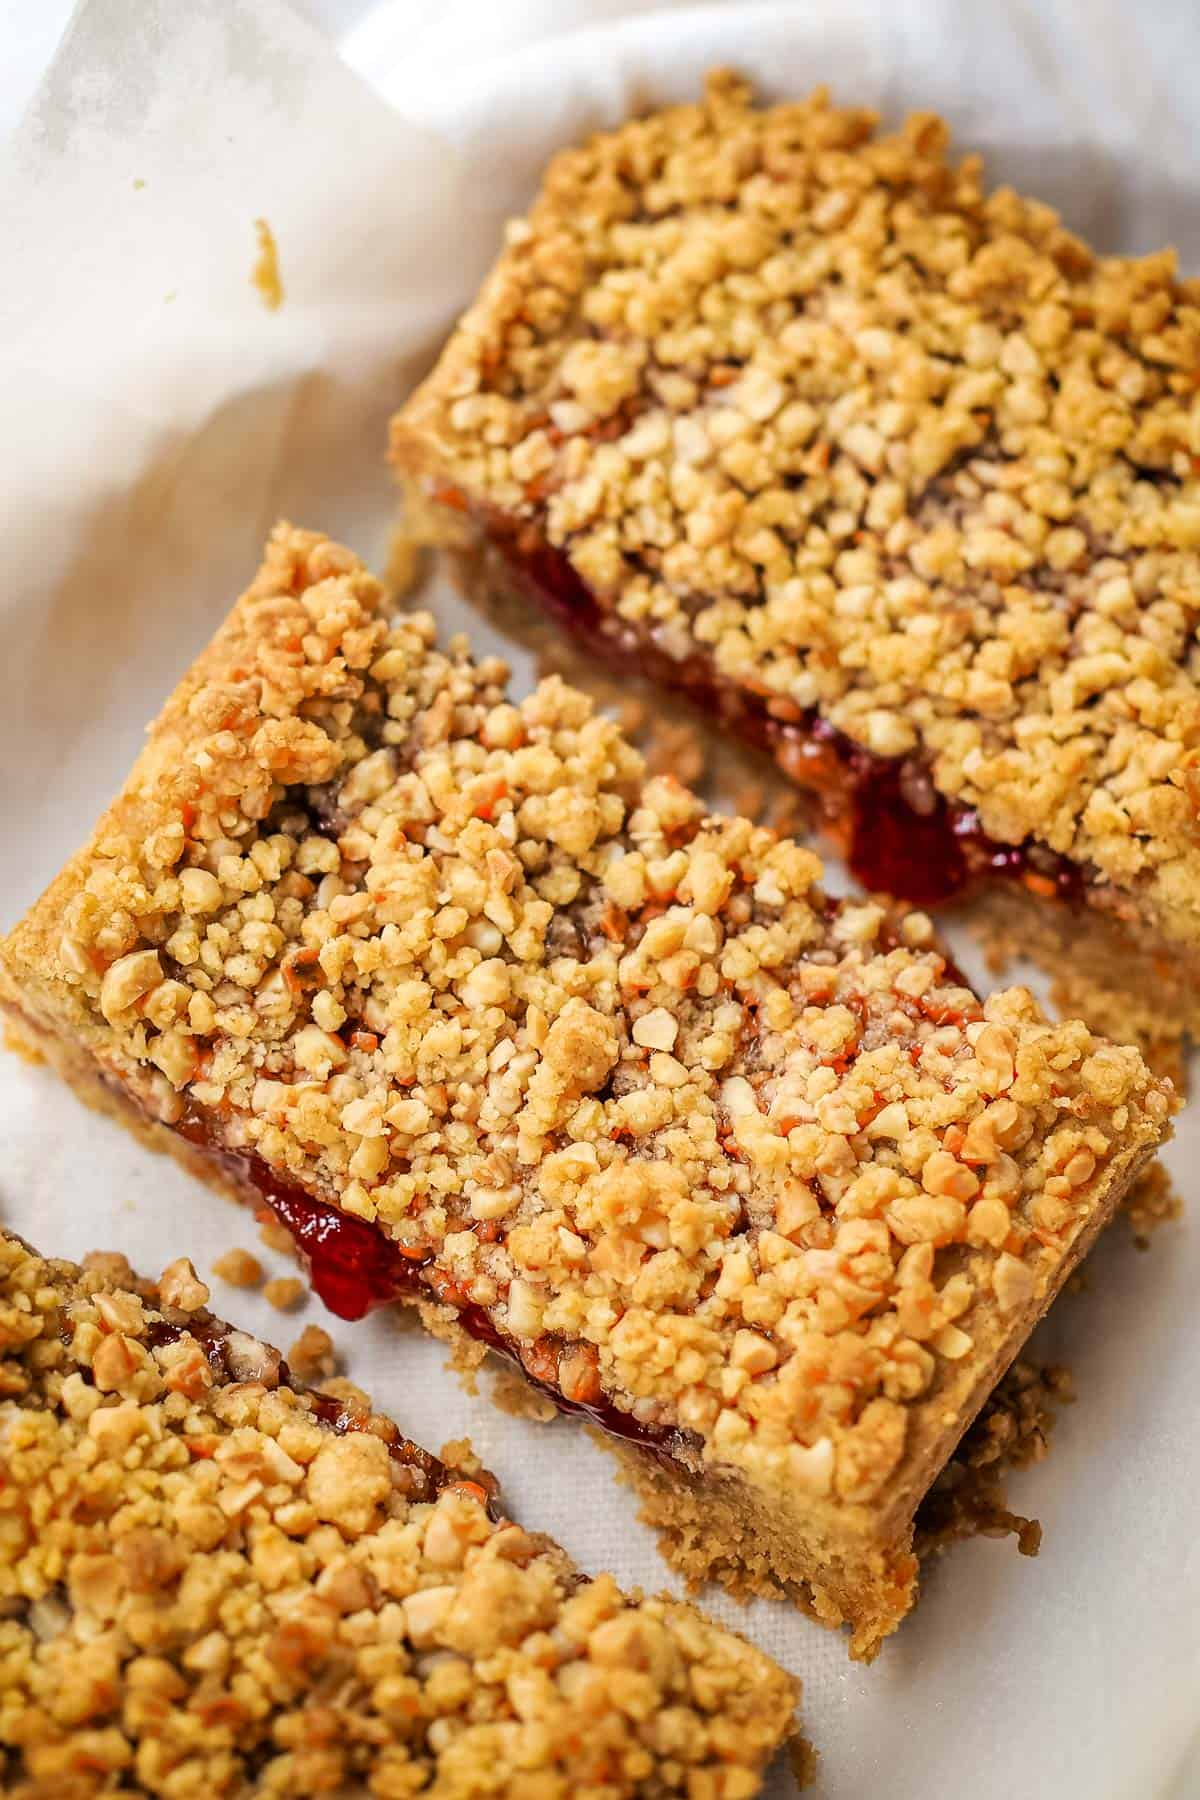 Sliced oat bars with strawberry filling